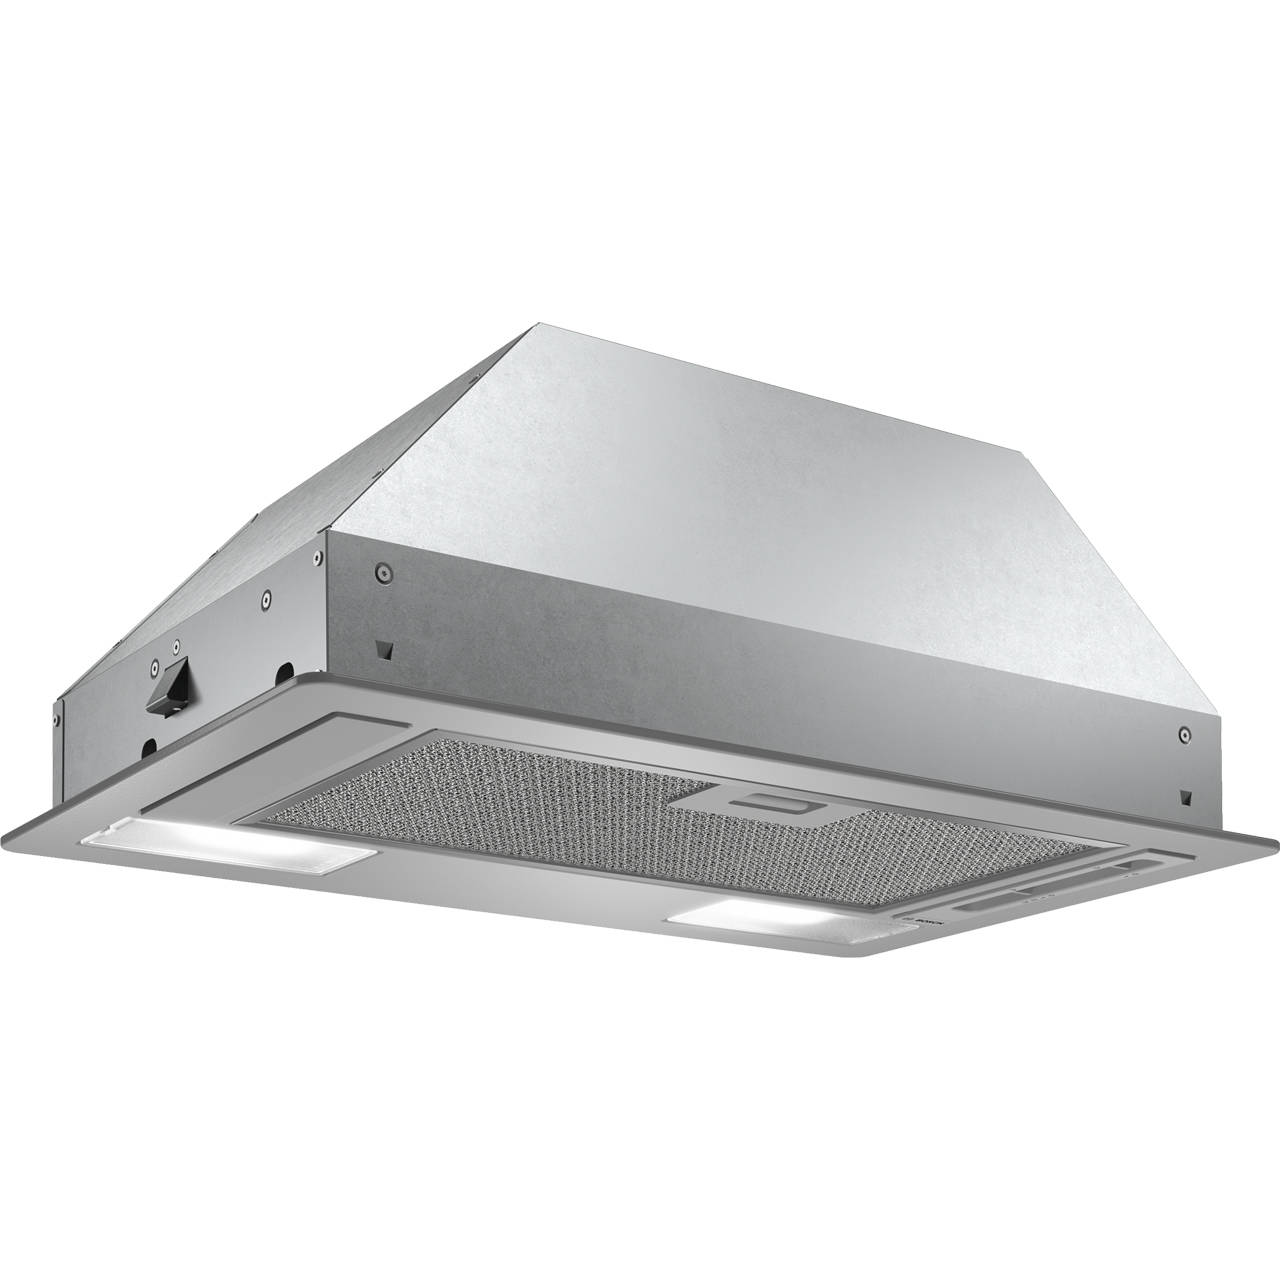 Bosch DLN53AA70B Built In Canopy Extractor